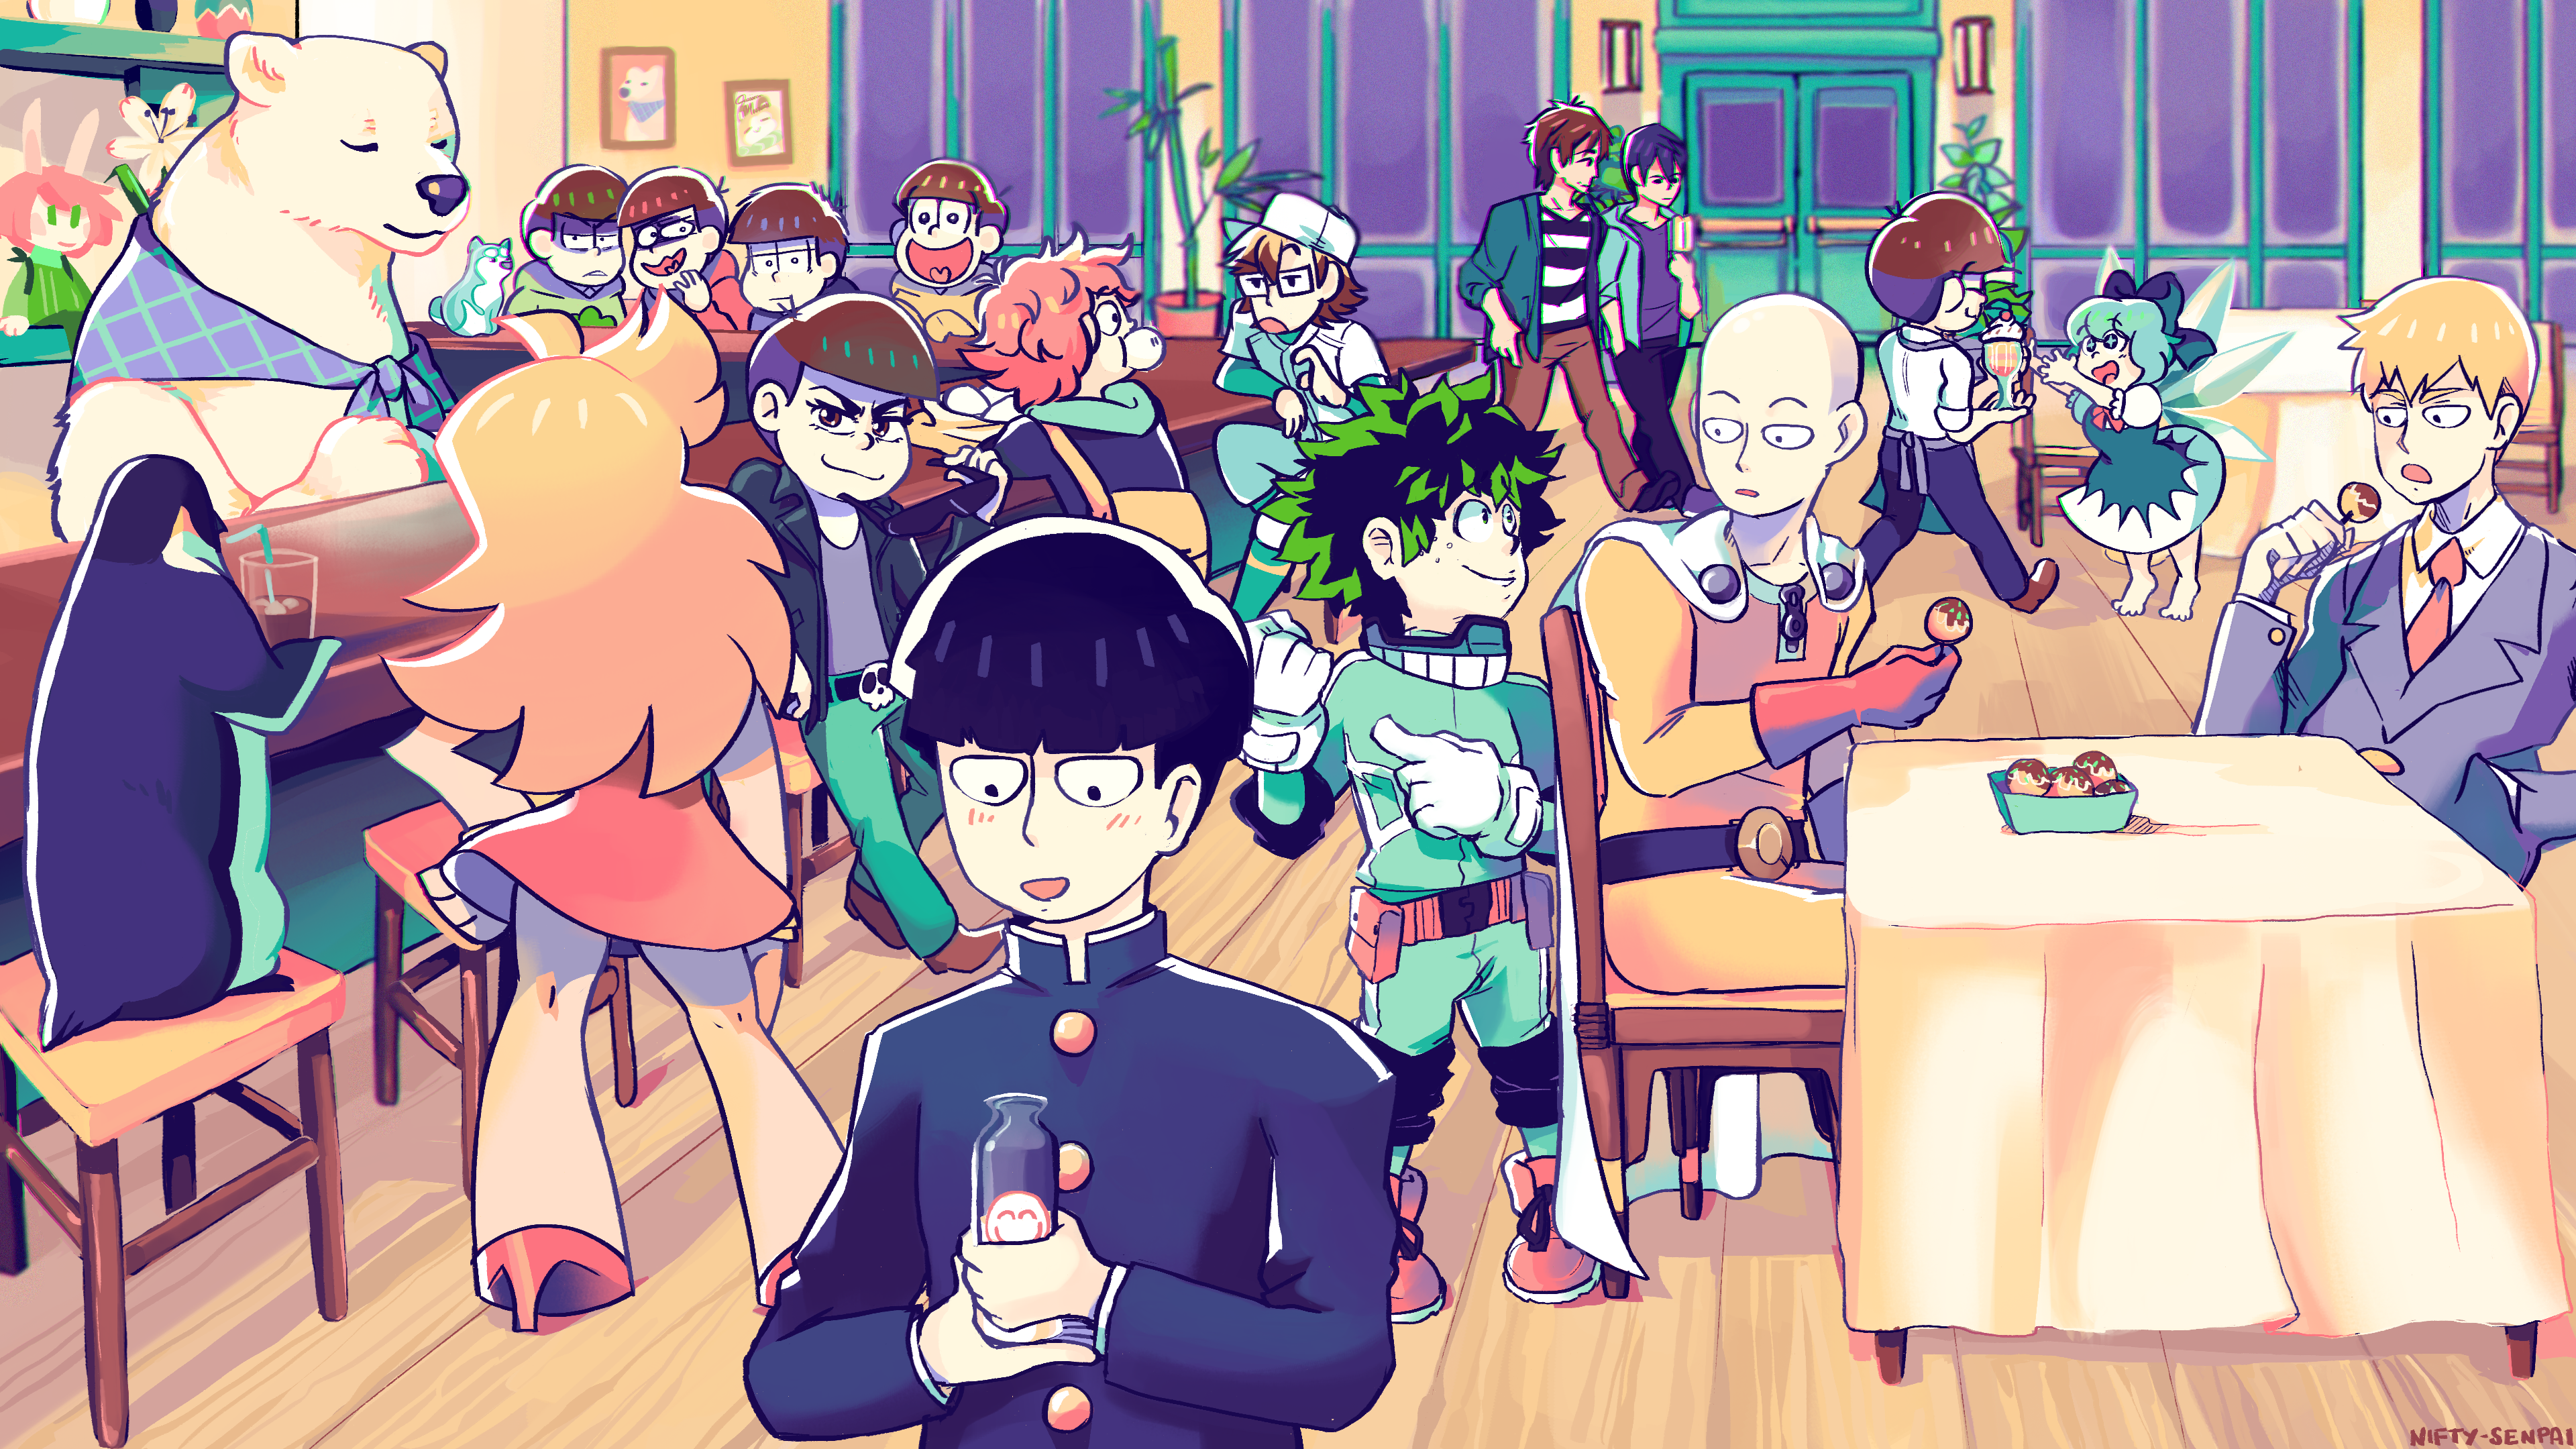 hd wallpaper background id750713 3840x2160 anime crossover